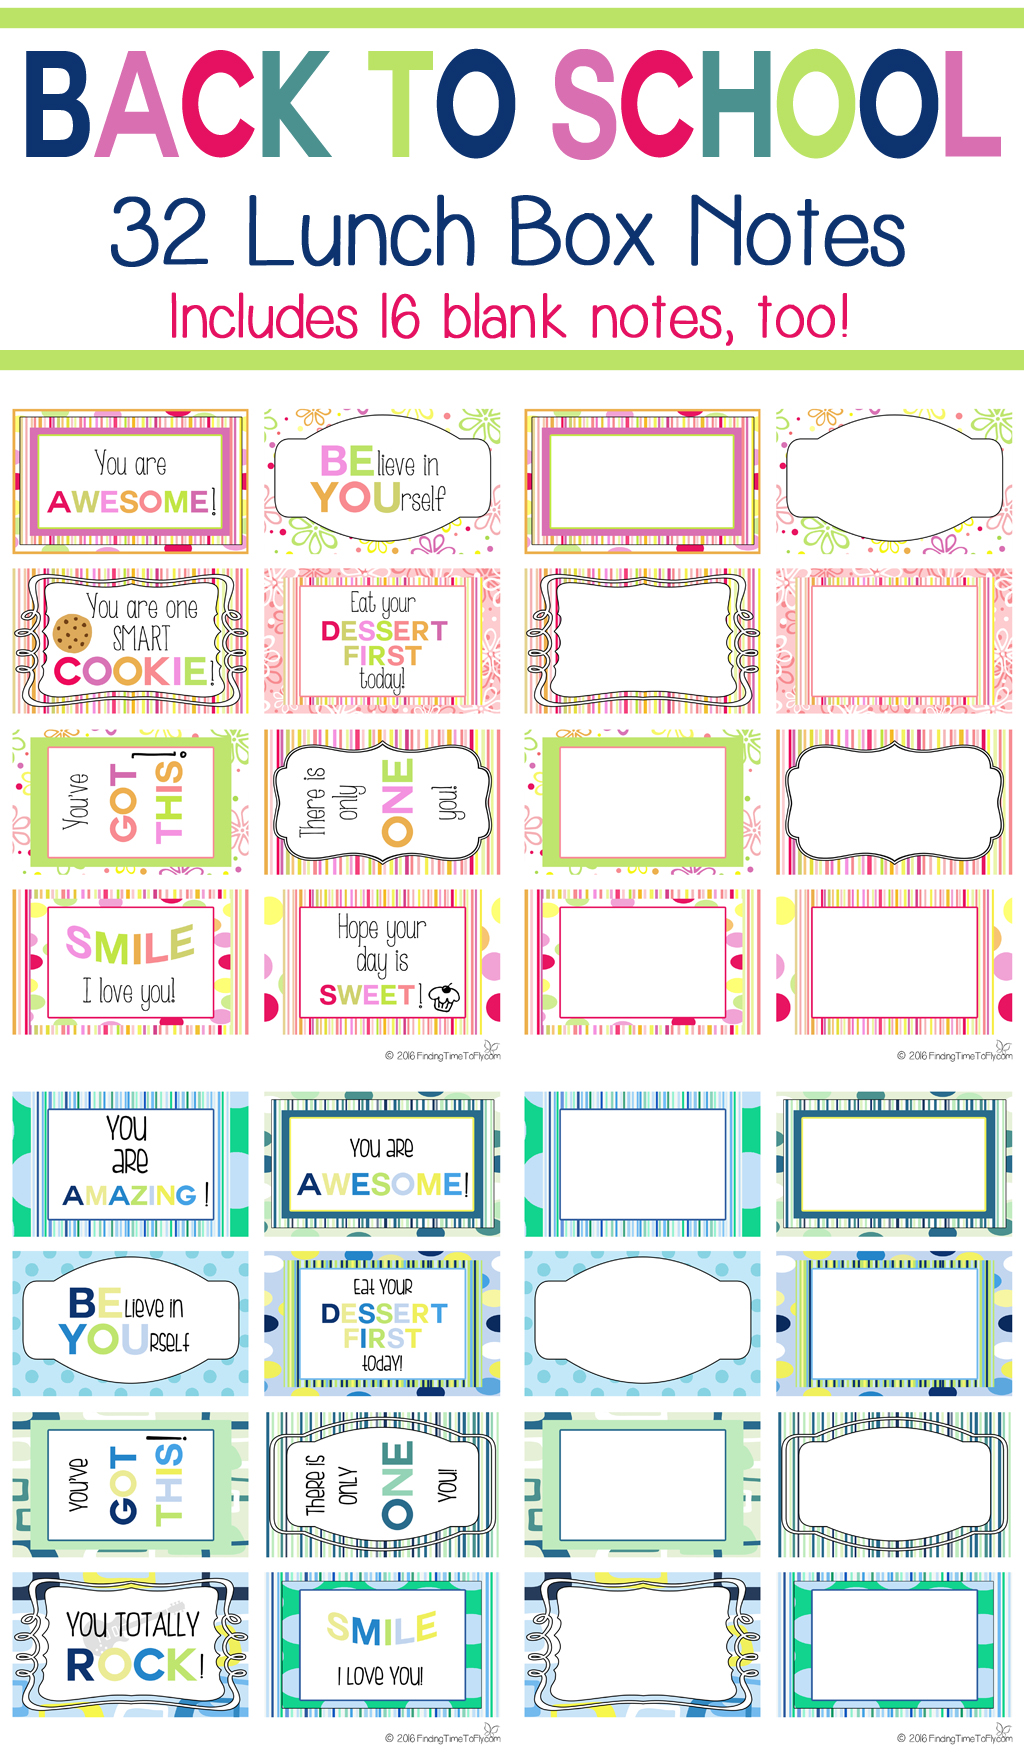 image about Free Printable Lunchbox Notes called Lunch Box Notes for Back again In the direction of Faculty - Obtaining Period In direction of Fly